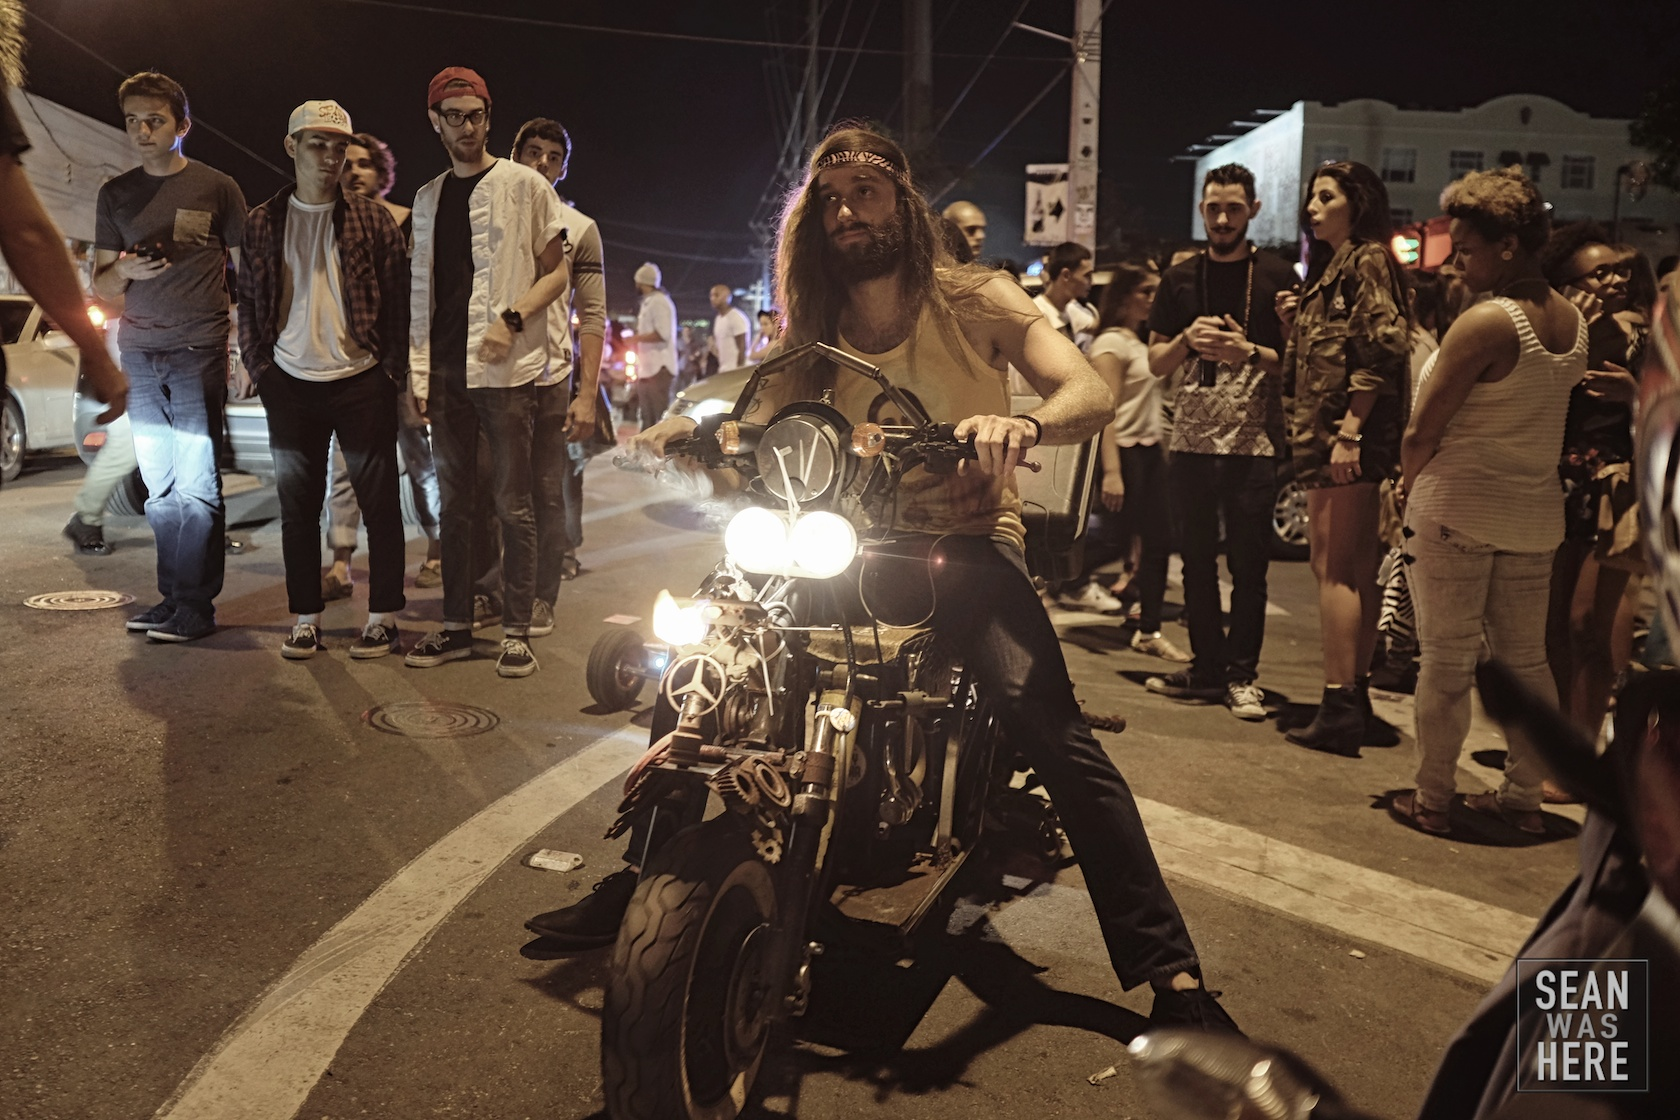 Custom built motorycle that spits fire. @zachonthat. NW 2nd Ave, Wynwood Miami